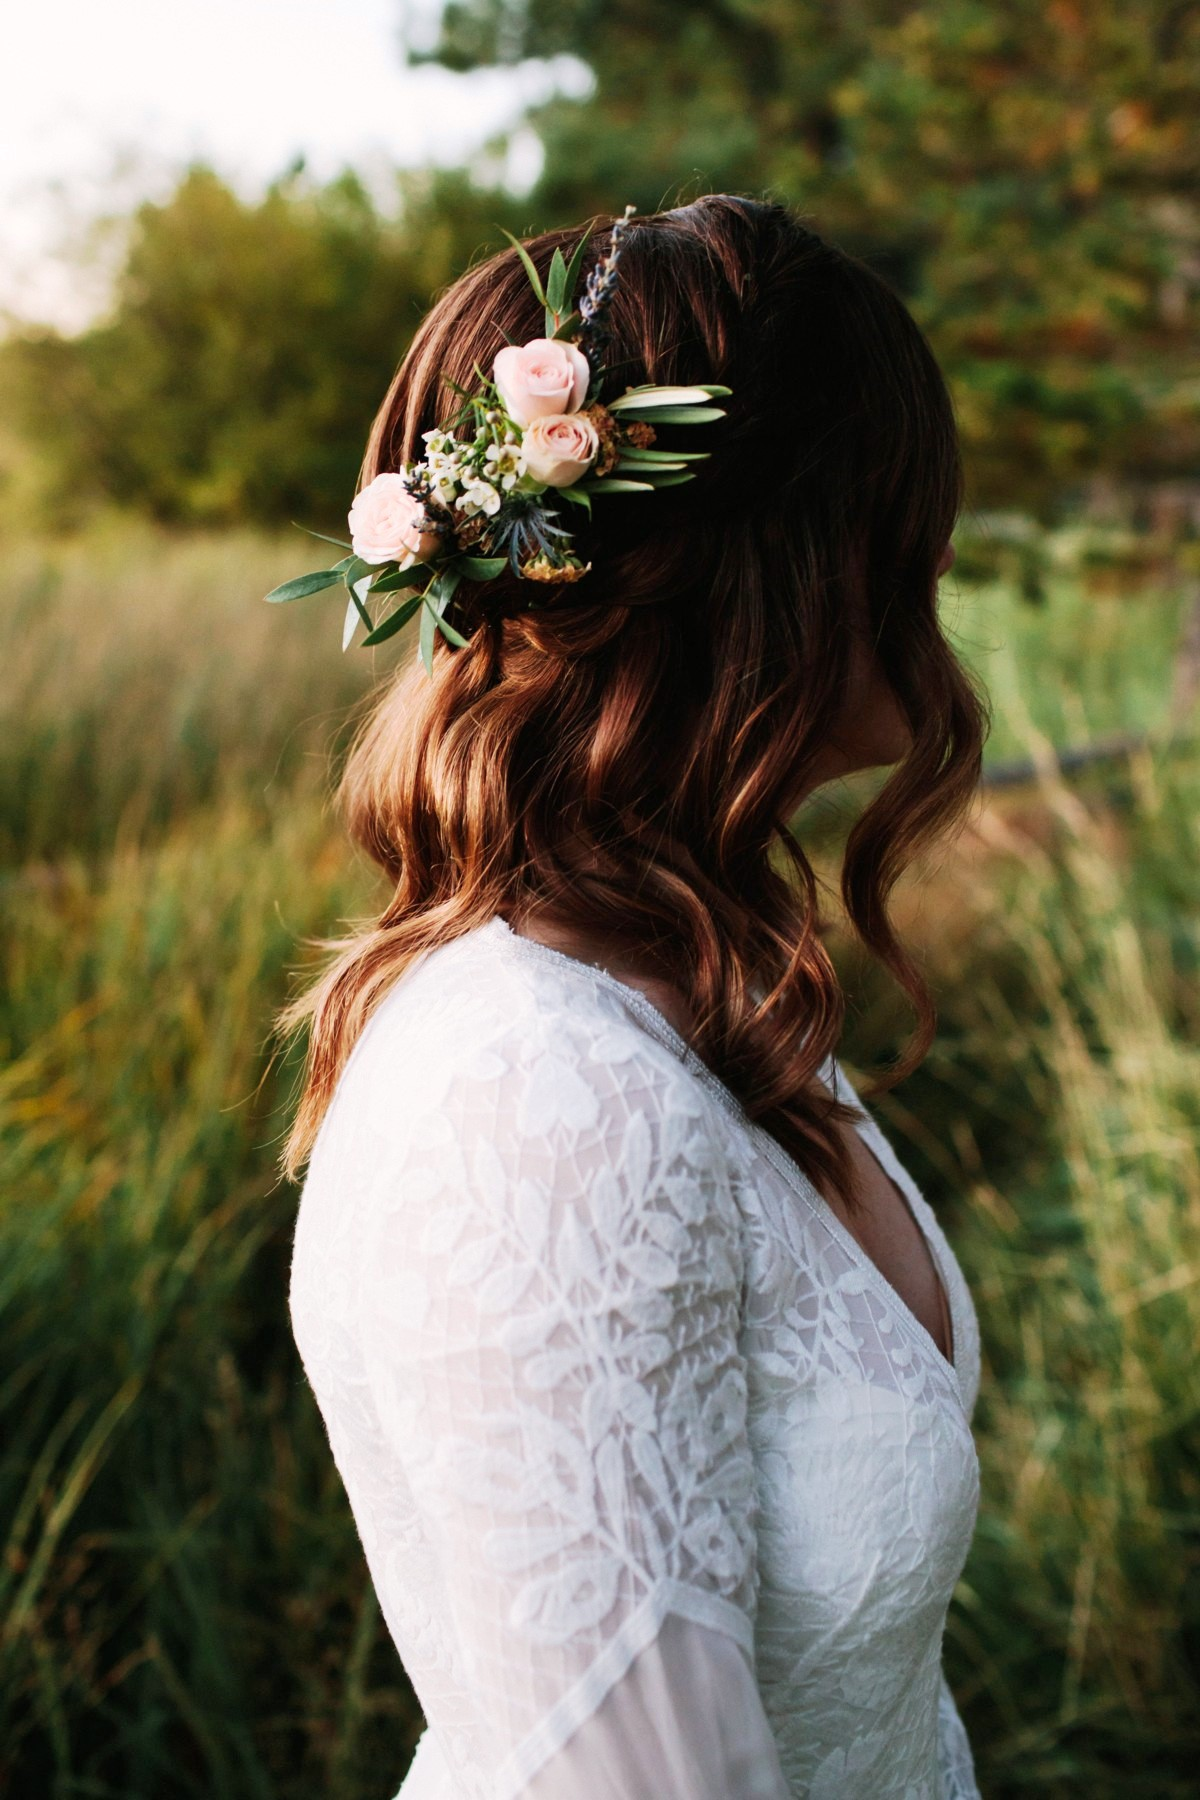 Lake Tahoe wedding florist Create With T - flowers in bride's hair